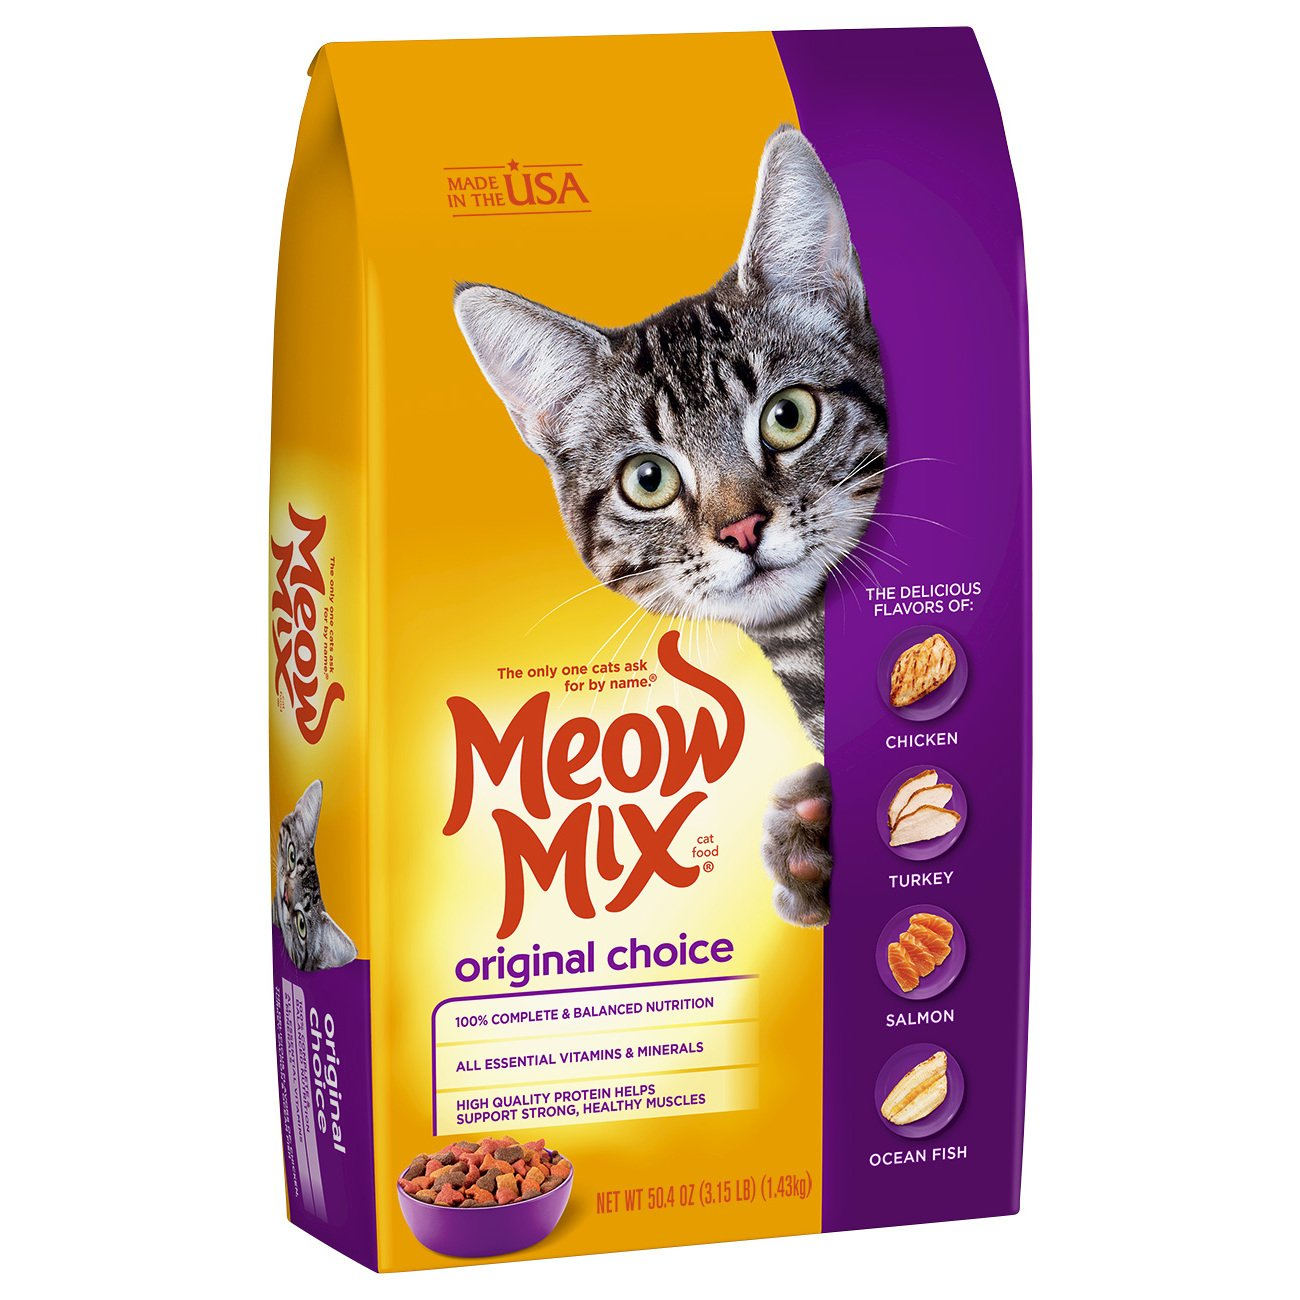 Meow Mix Original Choice Dry Cat Food, 16 lb